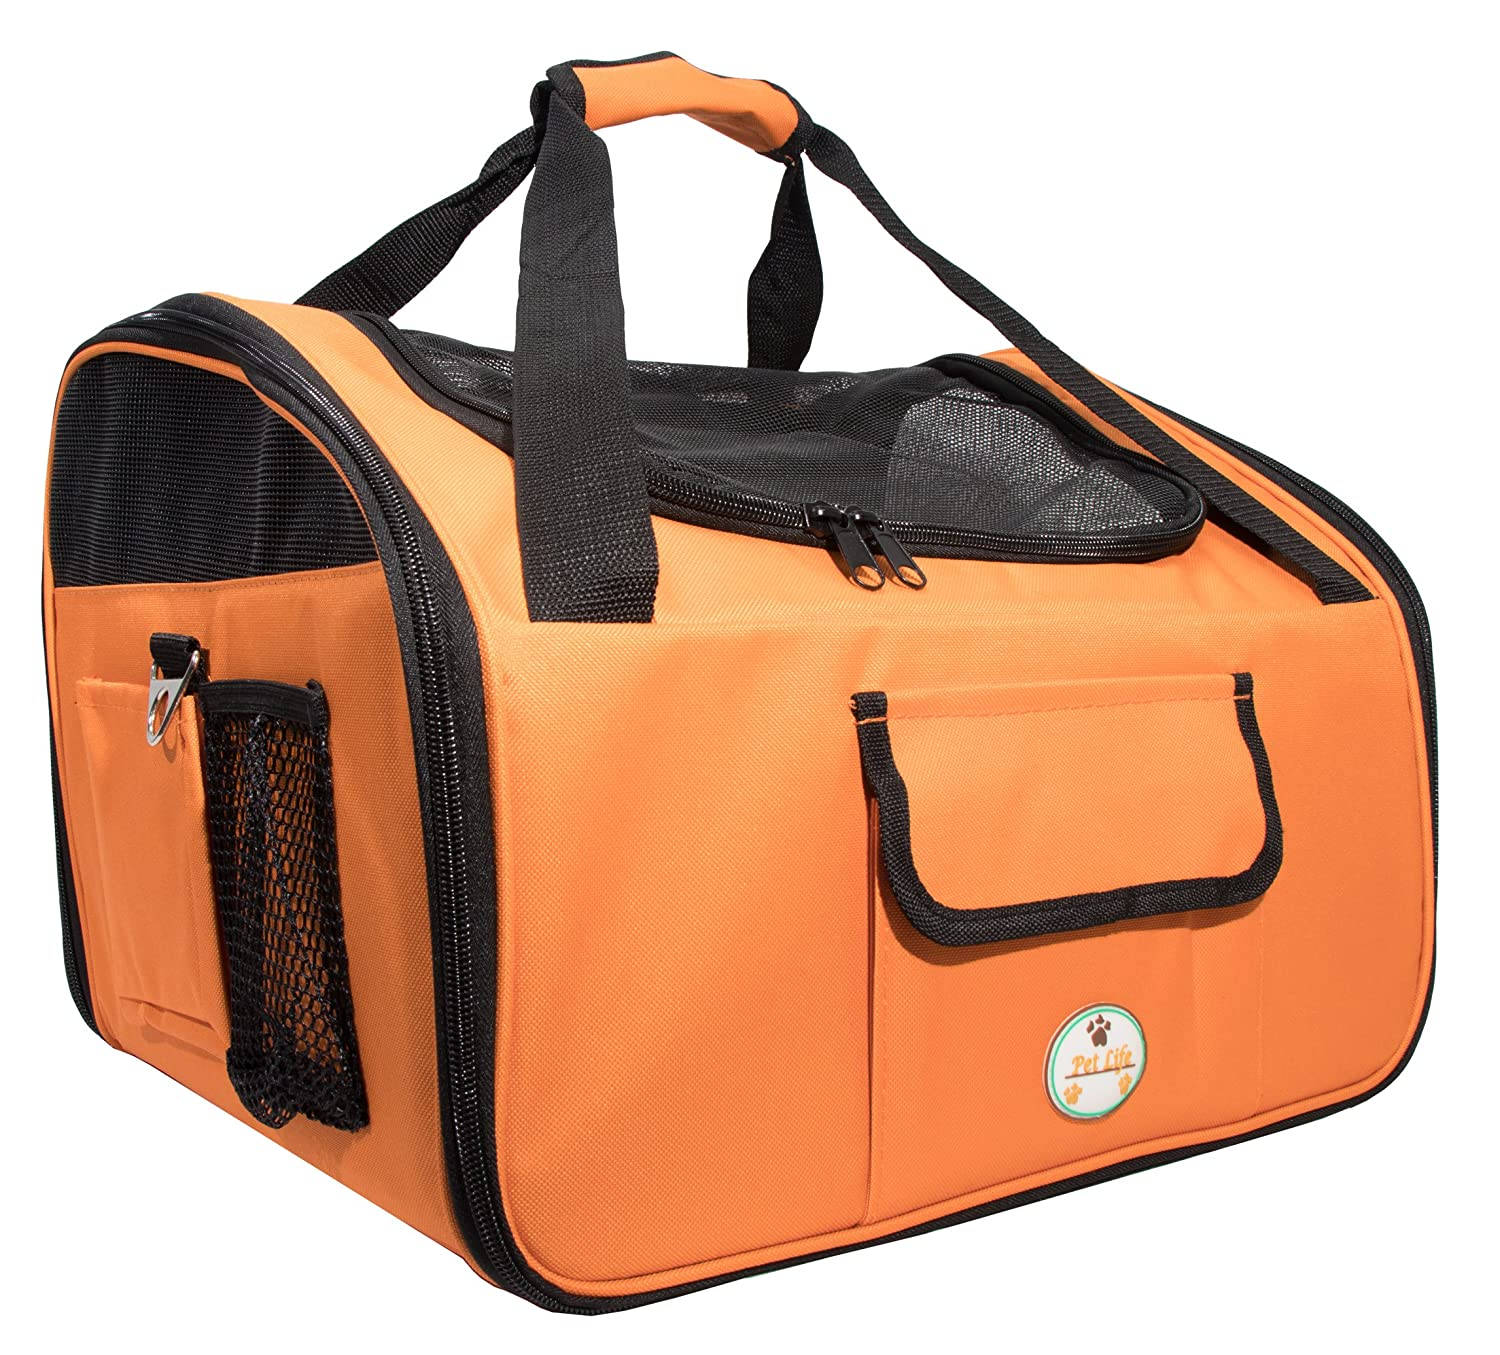 orange One Size orange One Size PET LIFE 'Ultra-Lock' Collapsible Safety Travel Wire Folding Pet Dog Carseat Car Seat Carrier Crate, One Size, orange